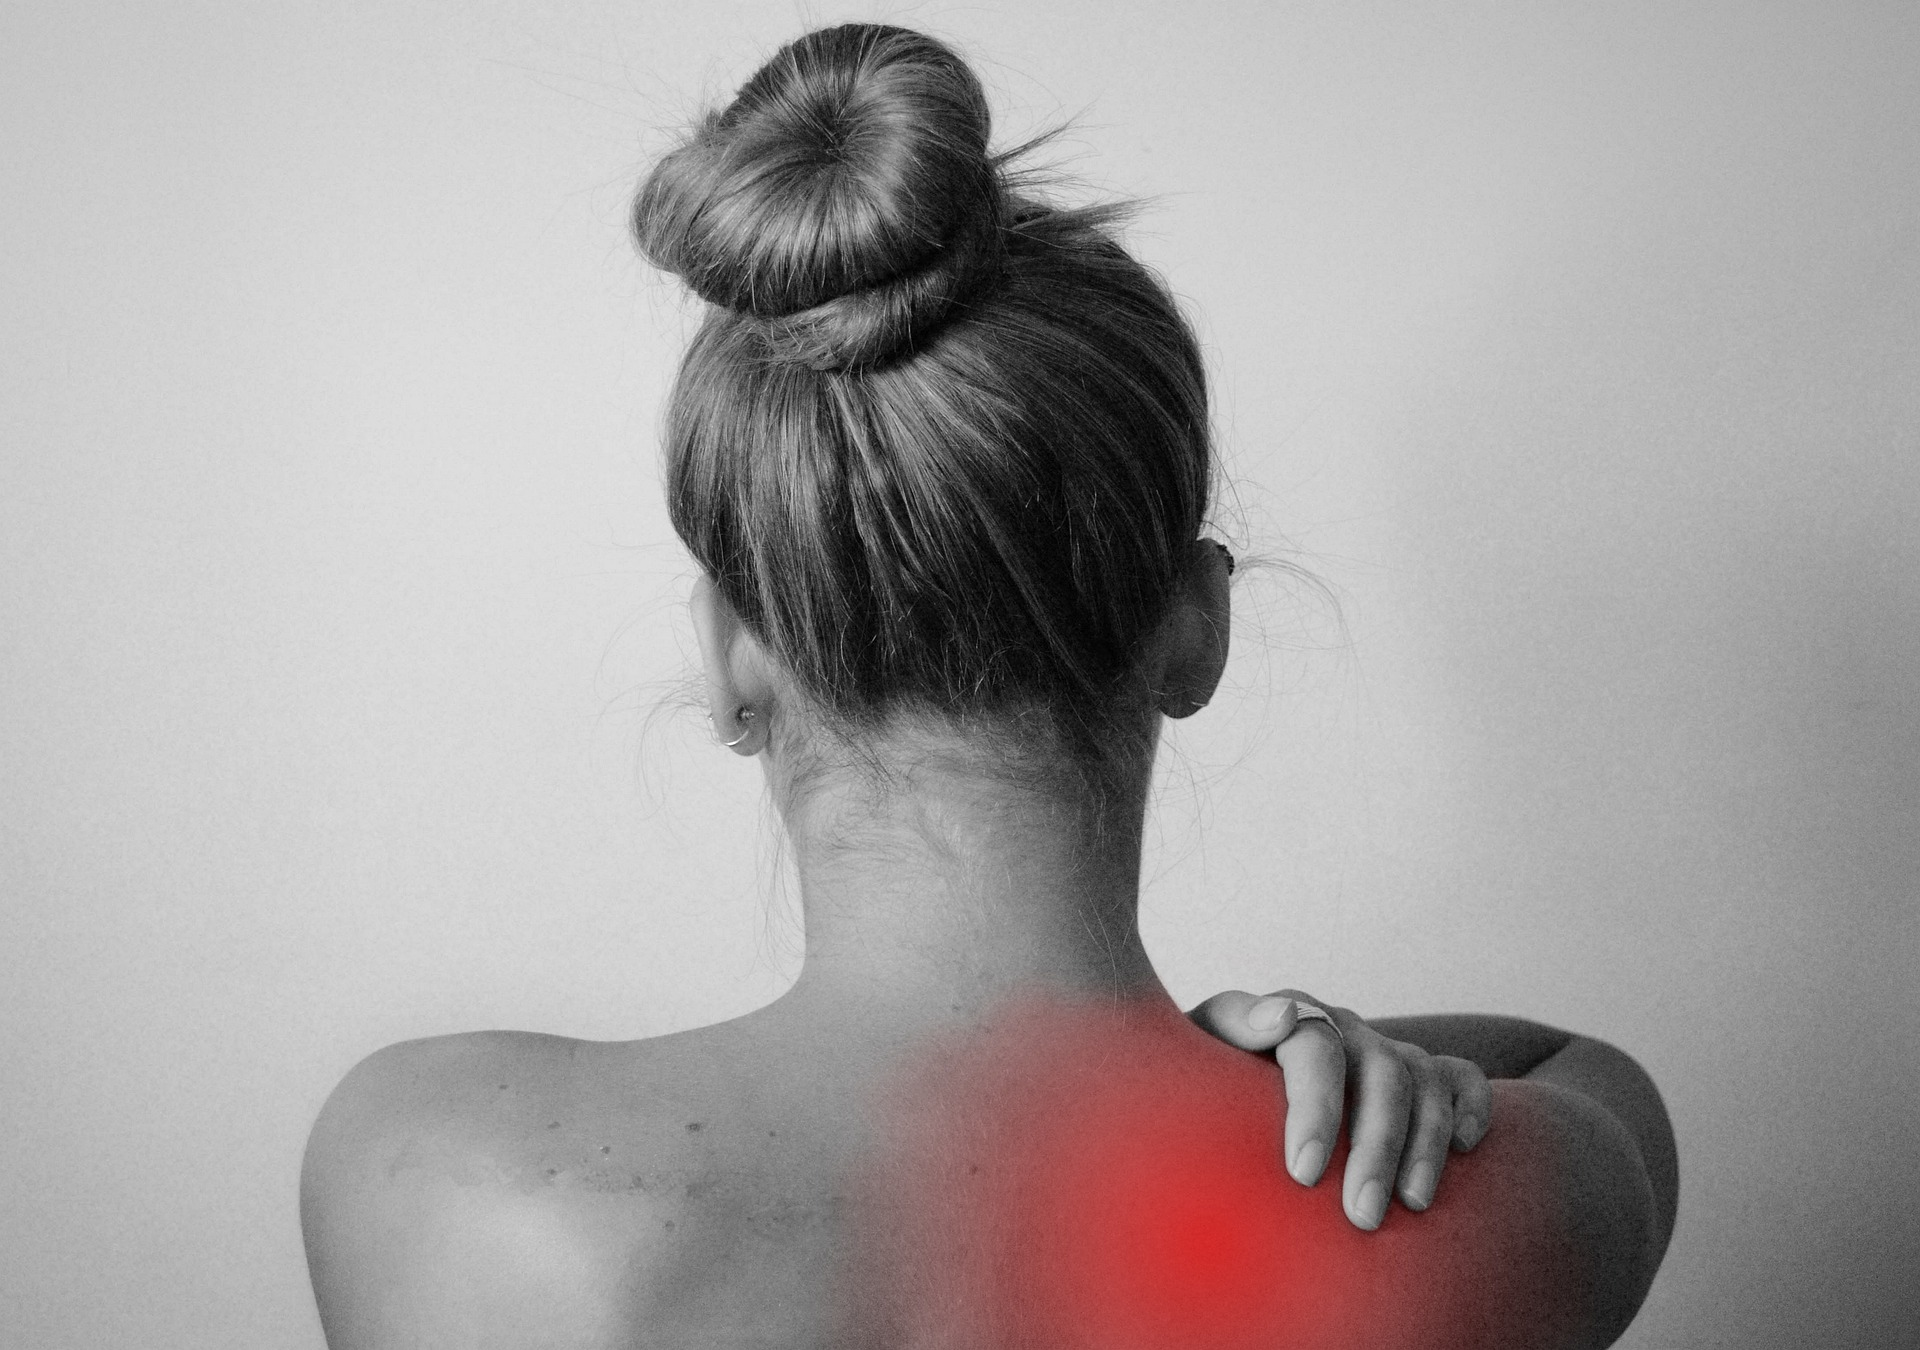 woman showing back pain - inflammation